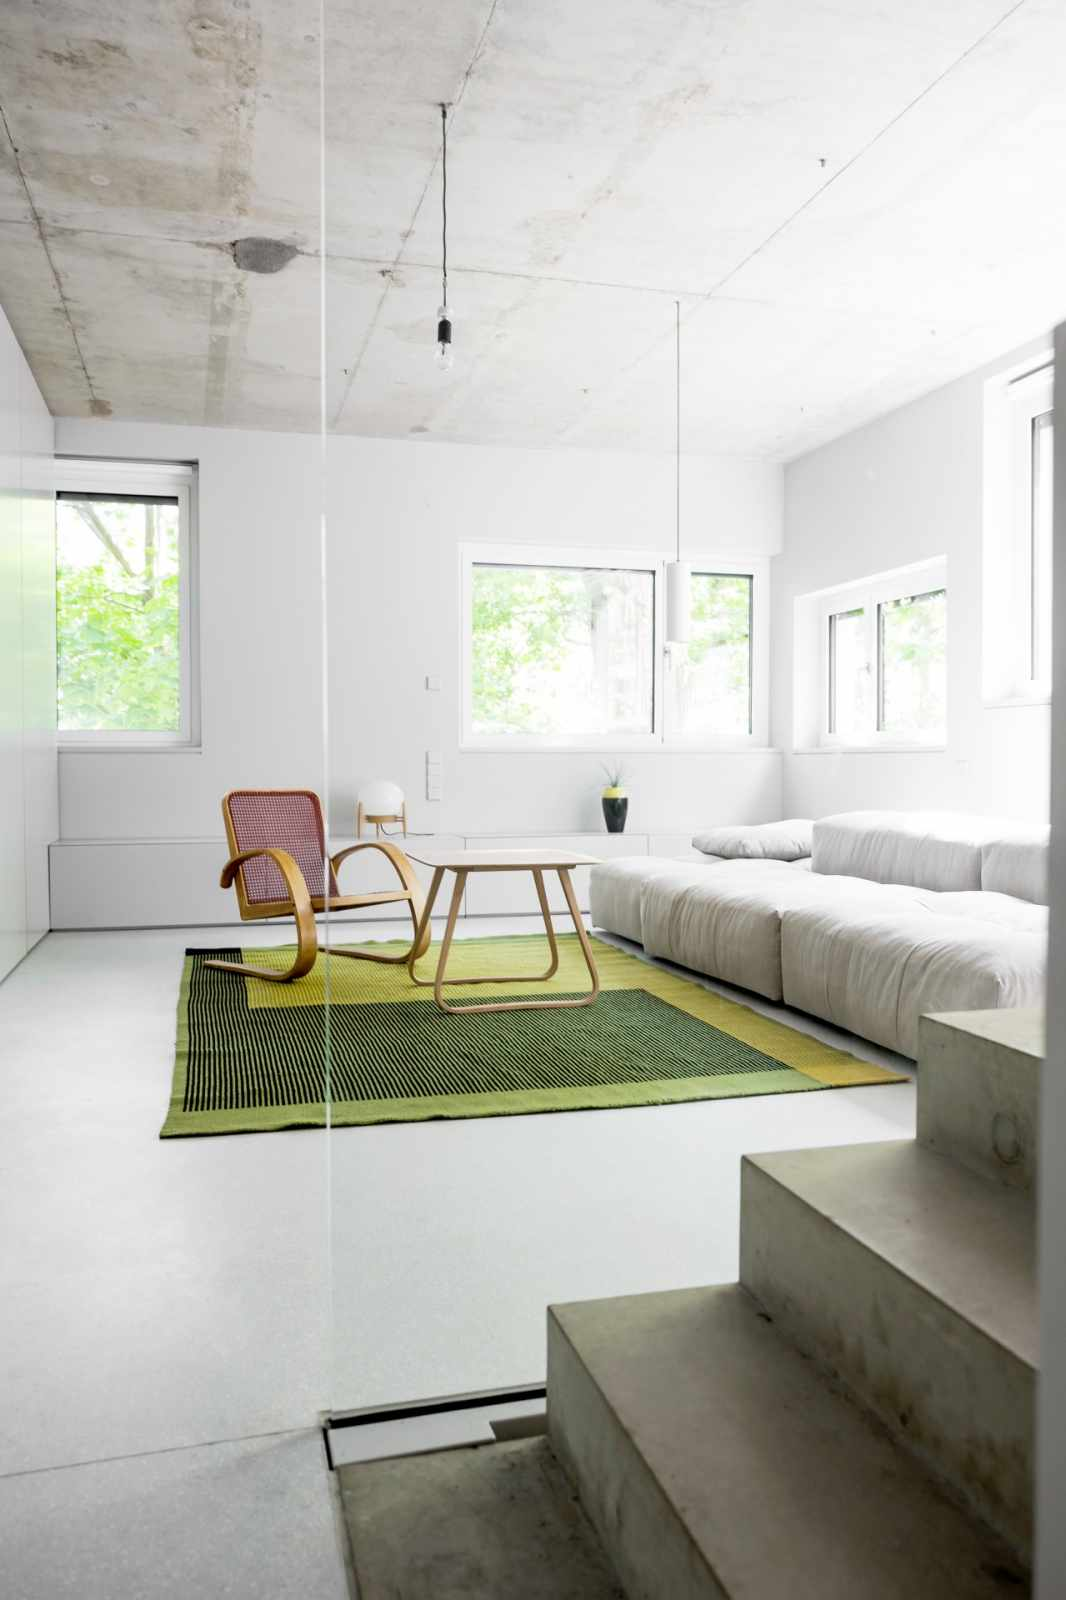 Minimalist Living Room with Green Rug and Grey Walls